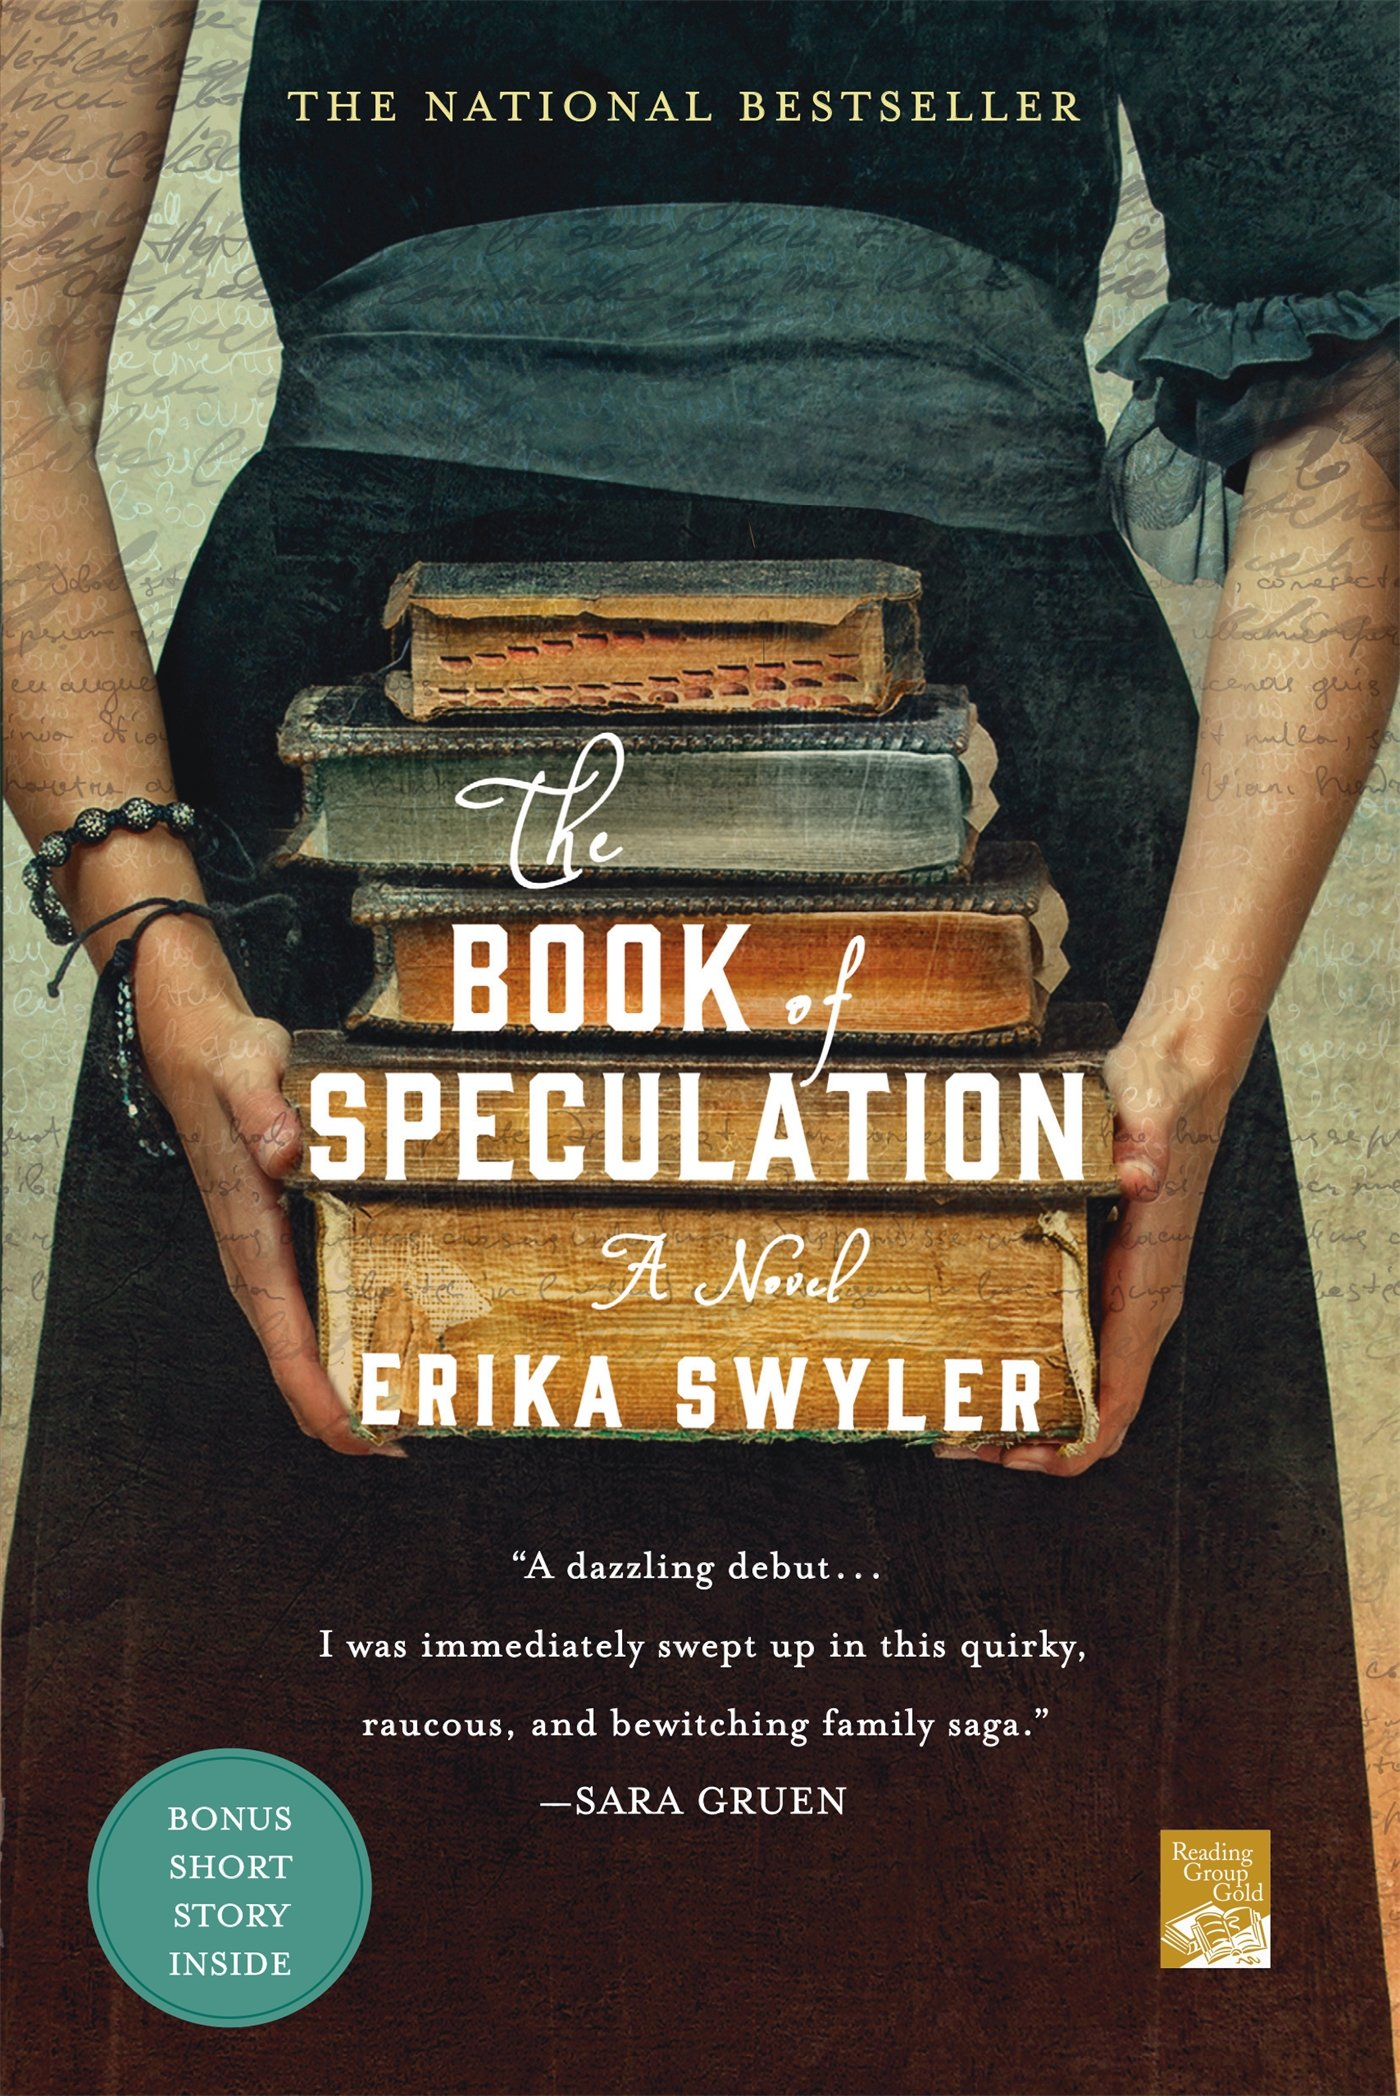 BSG #10: Put a tail on it! / The Book of Speculation - Special guest Mary Kay from Everything Trying to Kill Youjoins the squad to discuss Erika Swyler's novel The Book of Speculation.In this episode, we discuss the ins and out of circus literature (which is totally a thing), tarot readings, family curses, and much much more. Plus, we answer your burning questions about Stranger Thingsand Star Wars: The Last Jedi.Wonder what those space cows are really called? We have the answer!